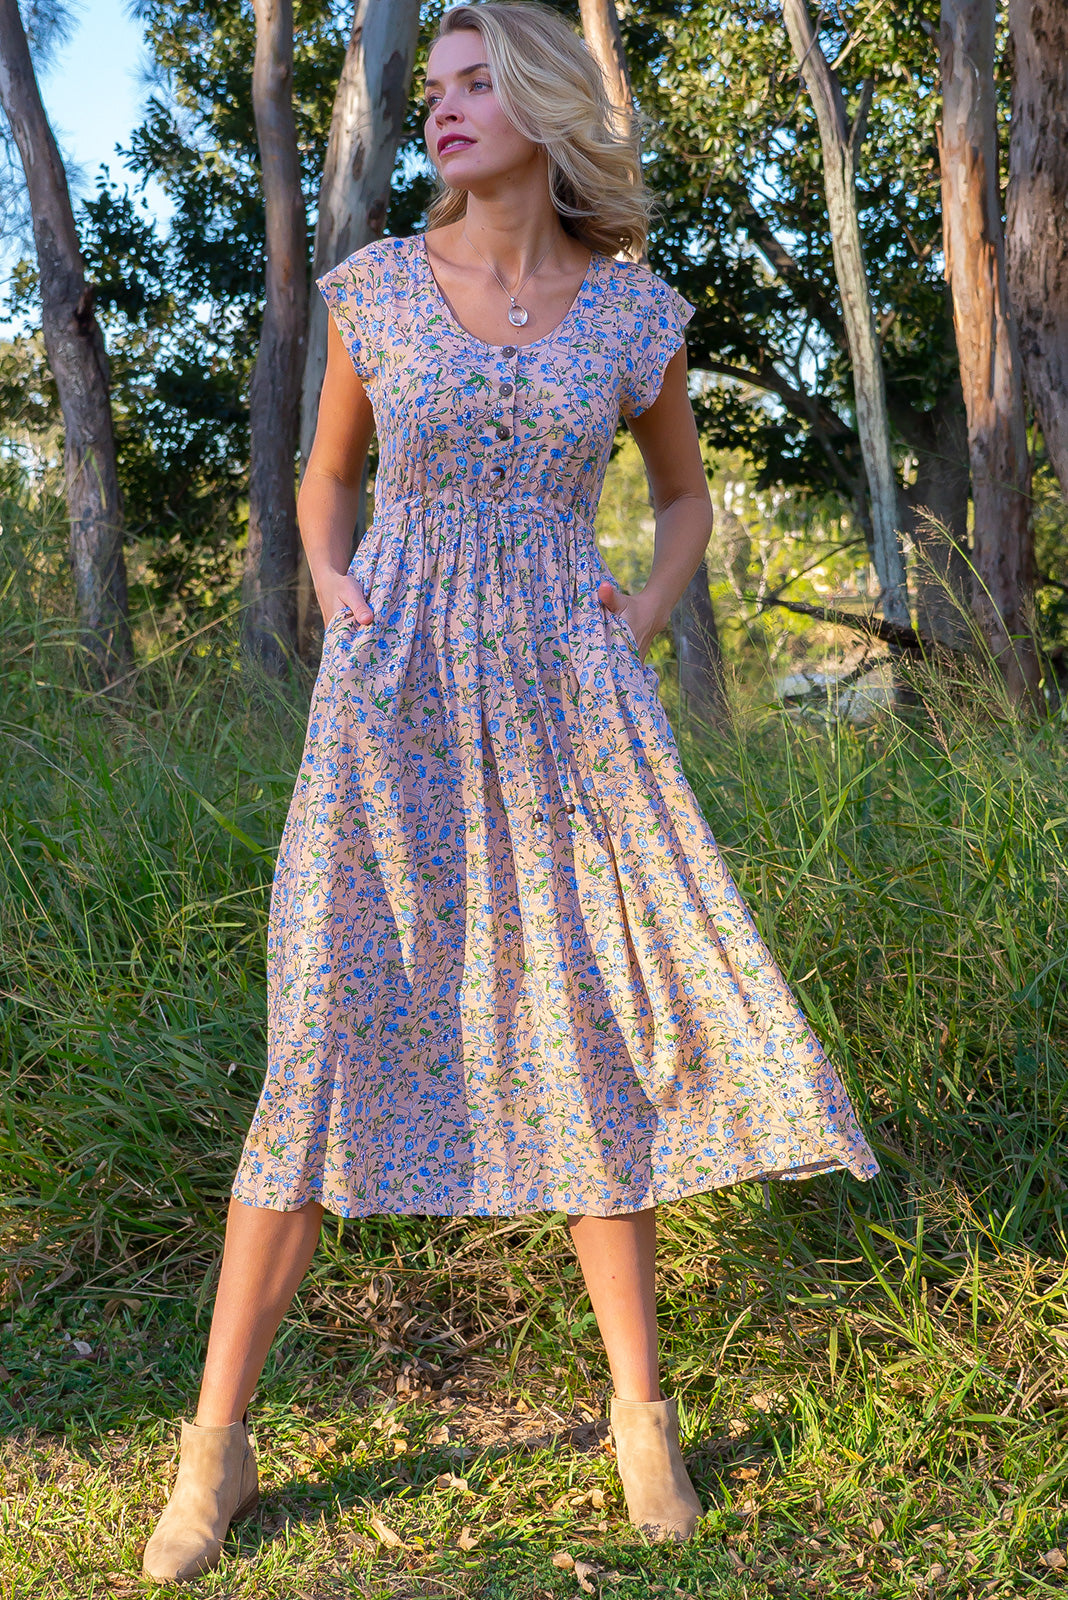 Juniper Ecru Haze Maxi Dress is much welcomed and adored featuring functional button down detailing to waistline, side pockets, adjustable drawstring waist in warm Ecru base with a blue floral vine print.